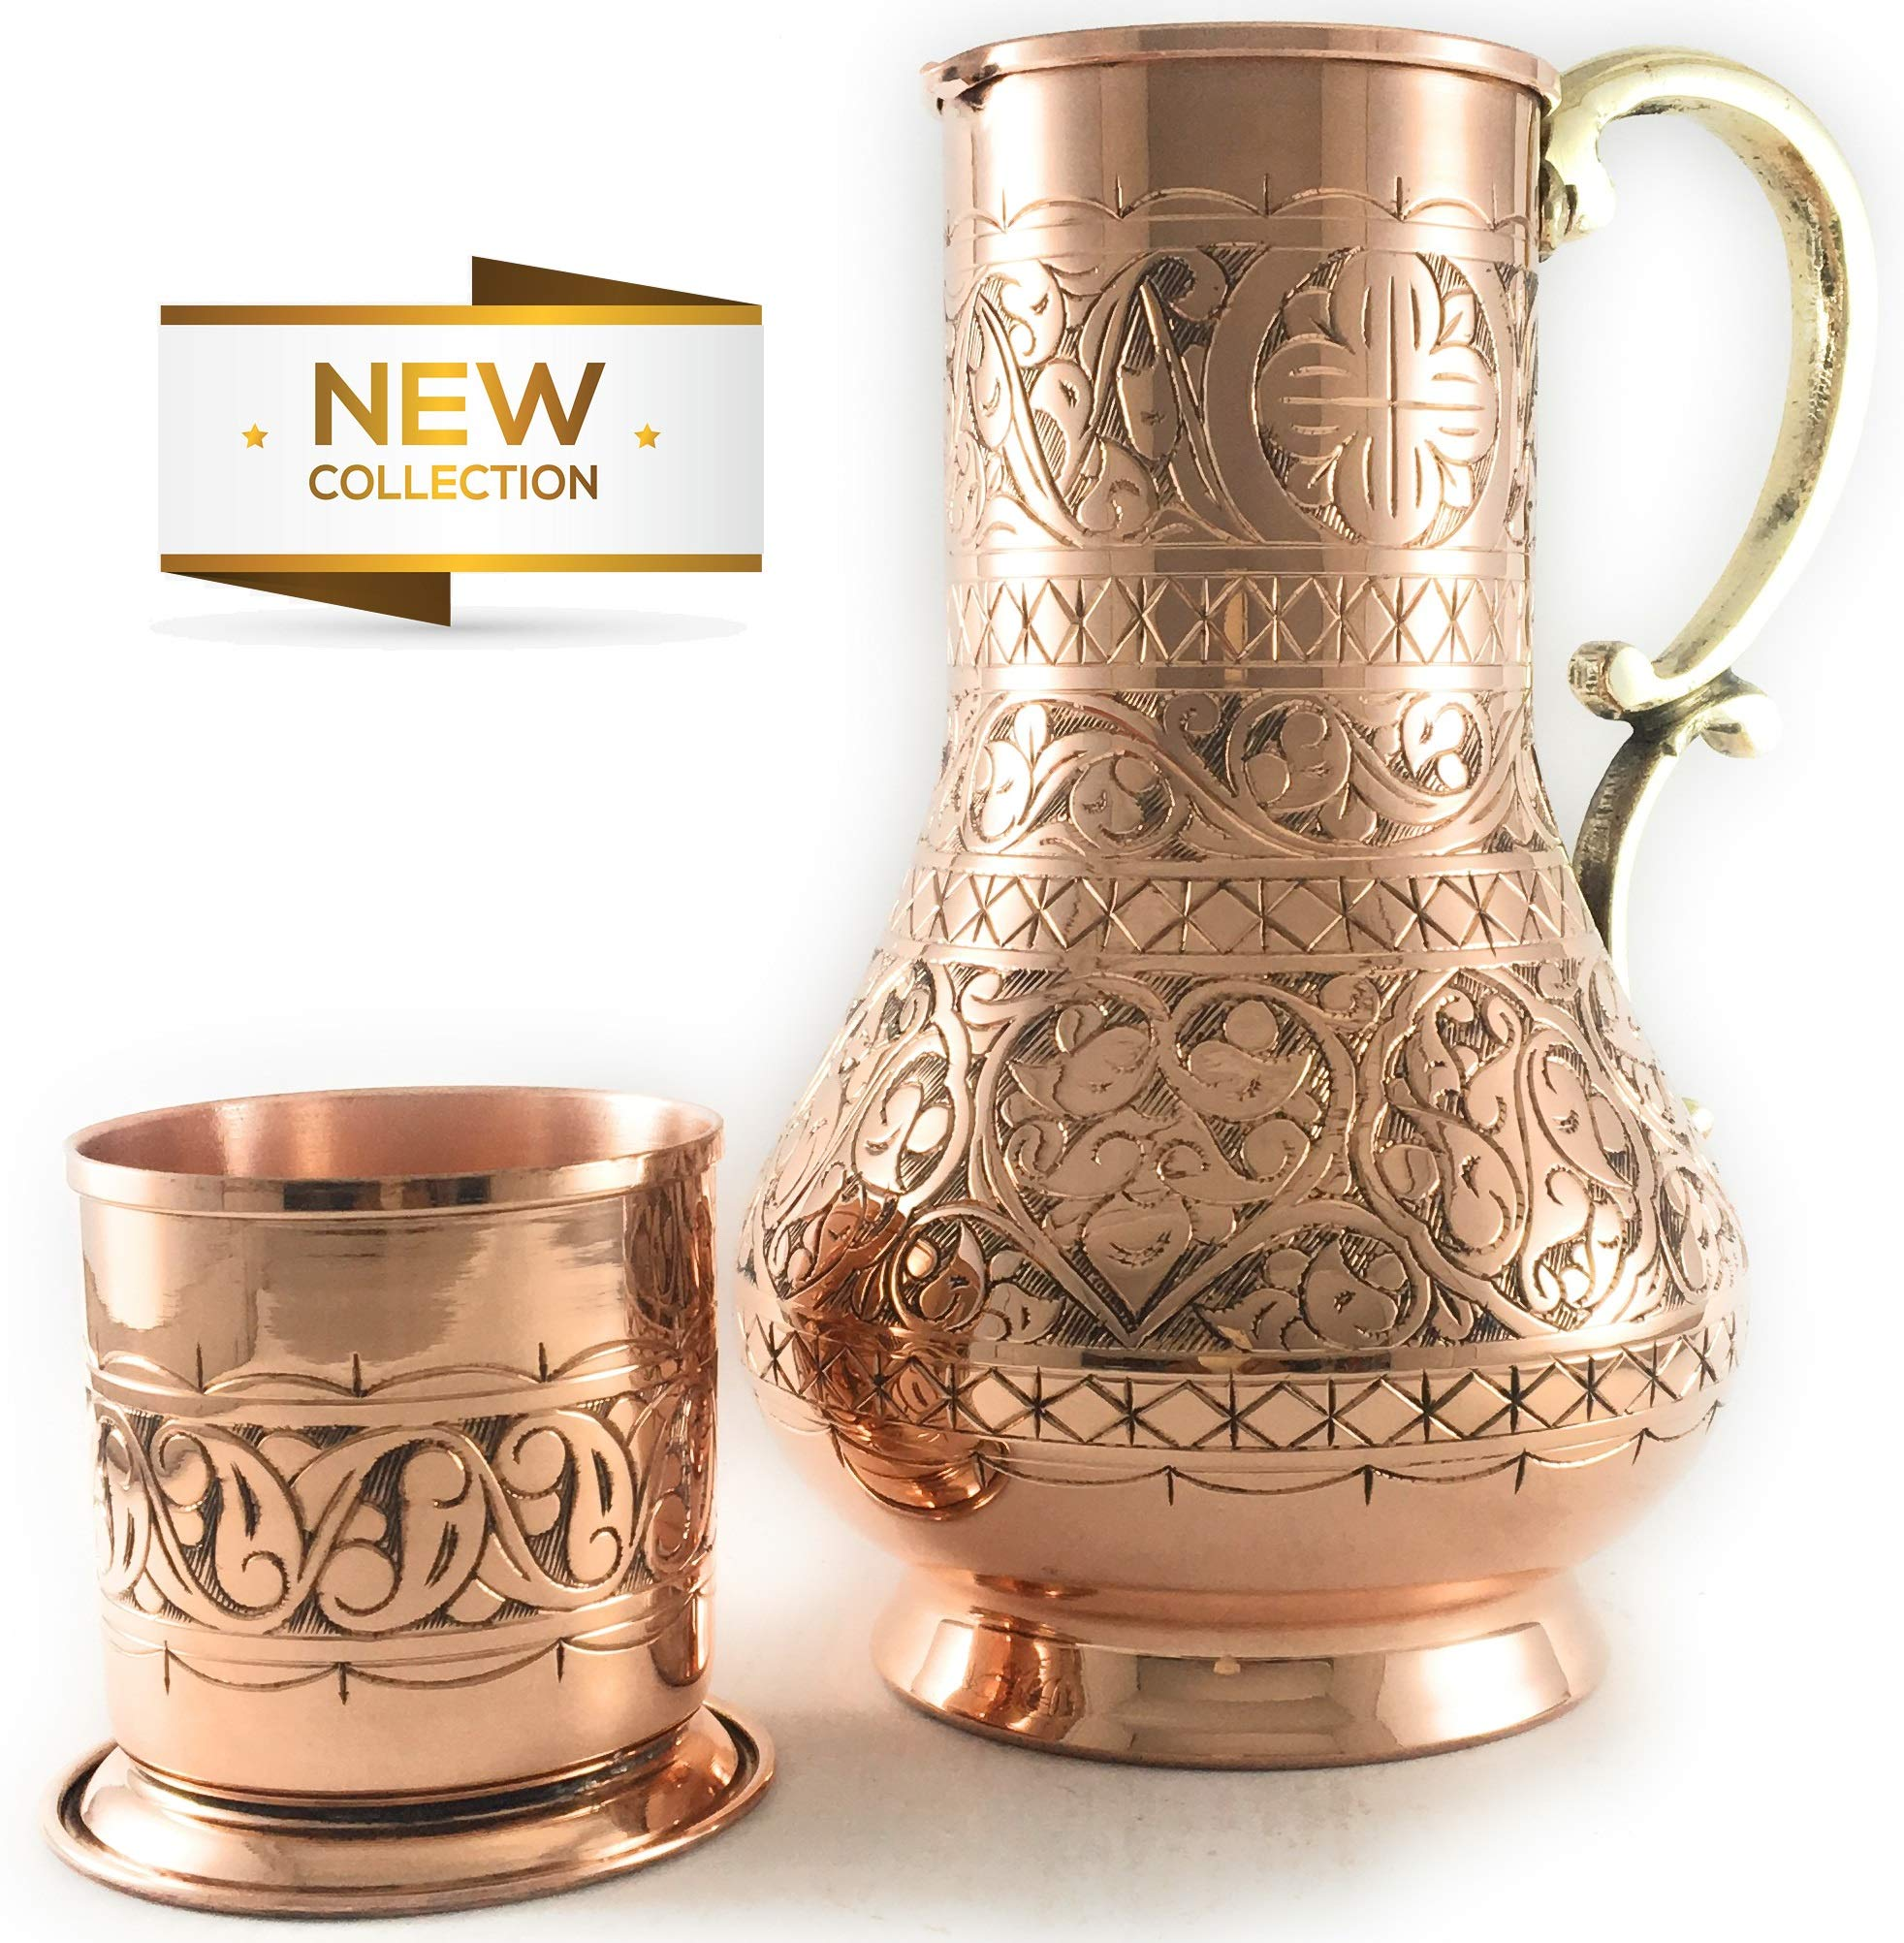 The Silk Road Trade - KS Series - NEW 2019-45oz Copper Pitcher and 7.7oz Cup Set with Lid, Moscow Mule Water Jug, Ice Tea and Juice Beverage, Desktop/Bedside Night Water Carafe Ayurvedic (Engraved)